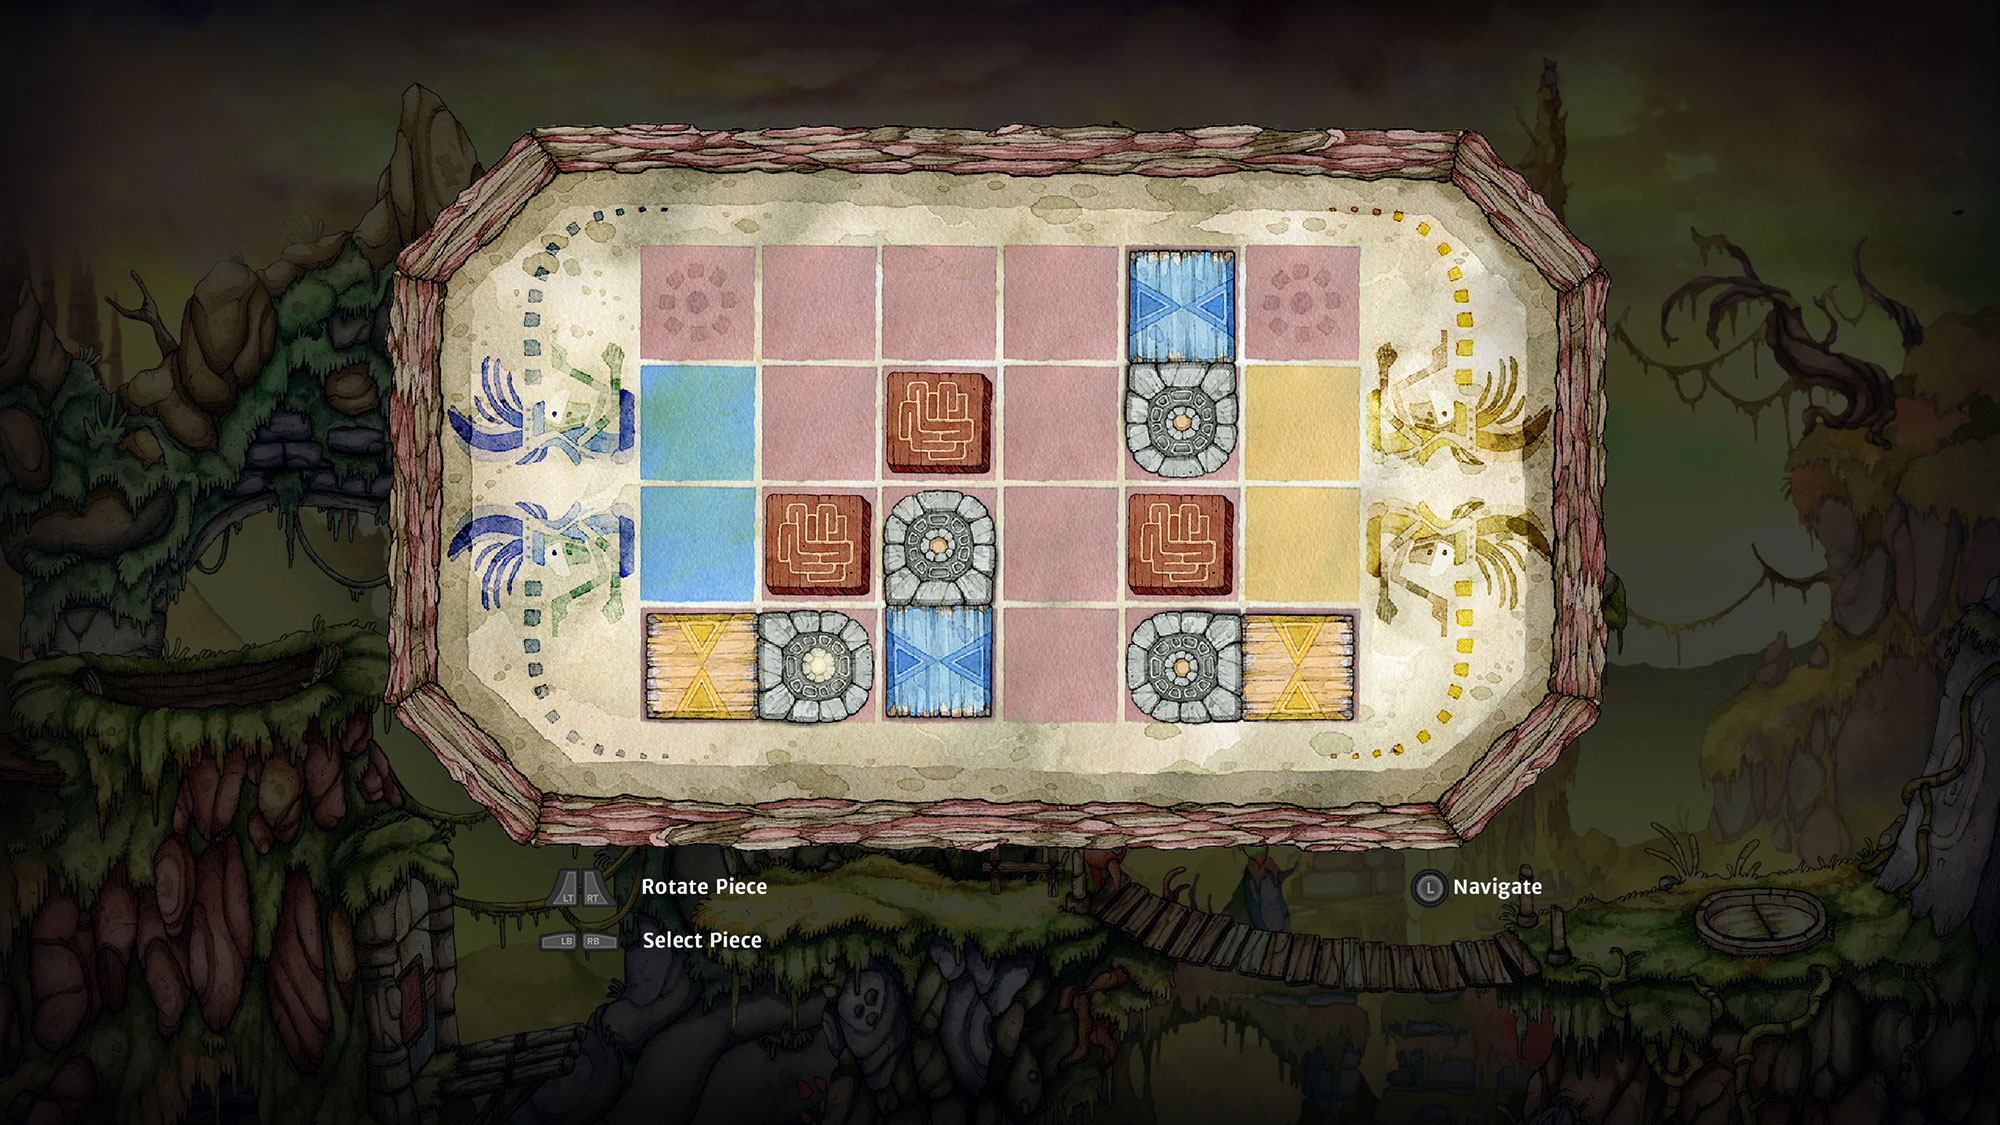 There are minigame-style puzzles throughout